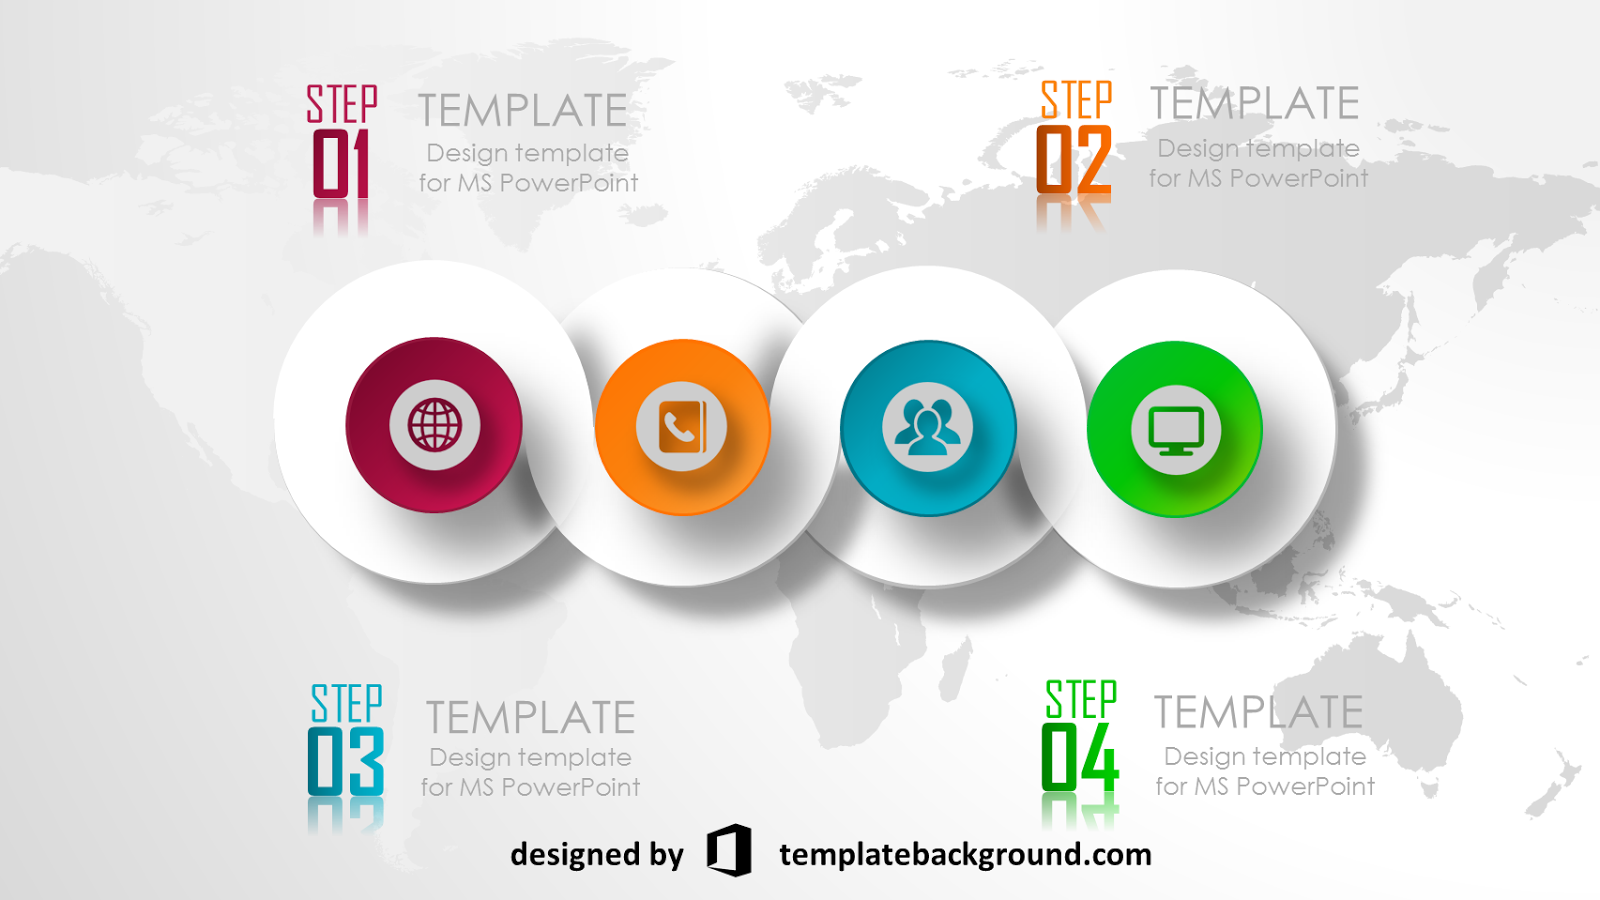 free 3d animated powerpoint templates download pinterest